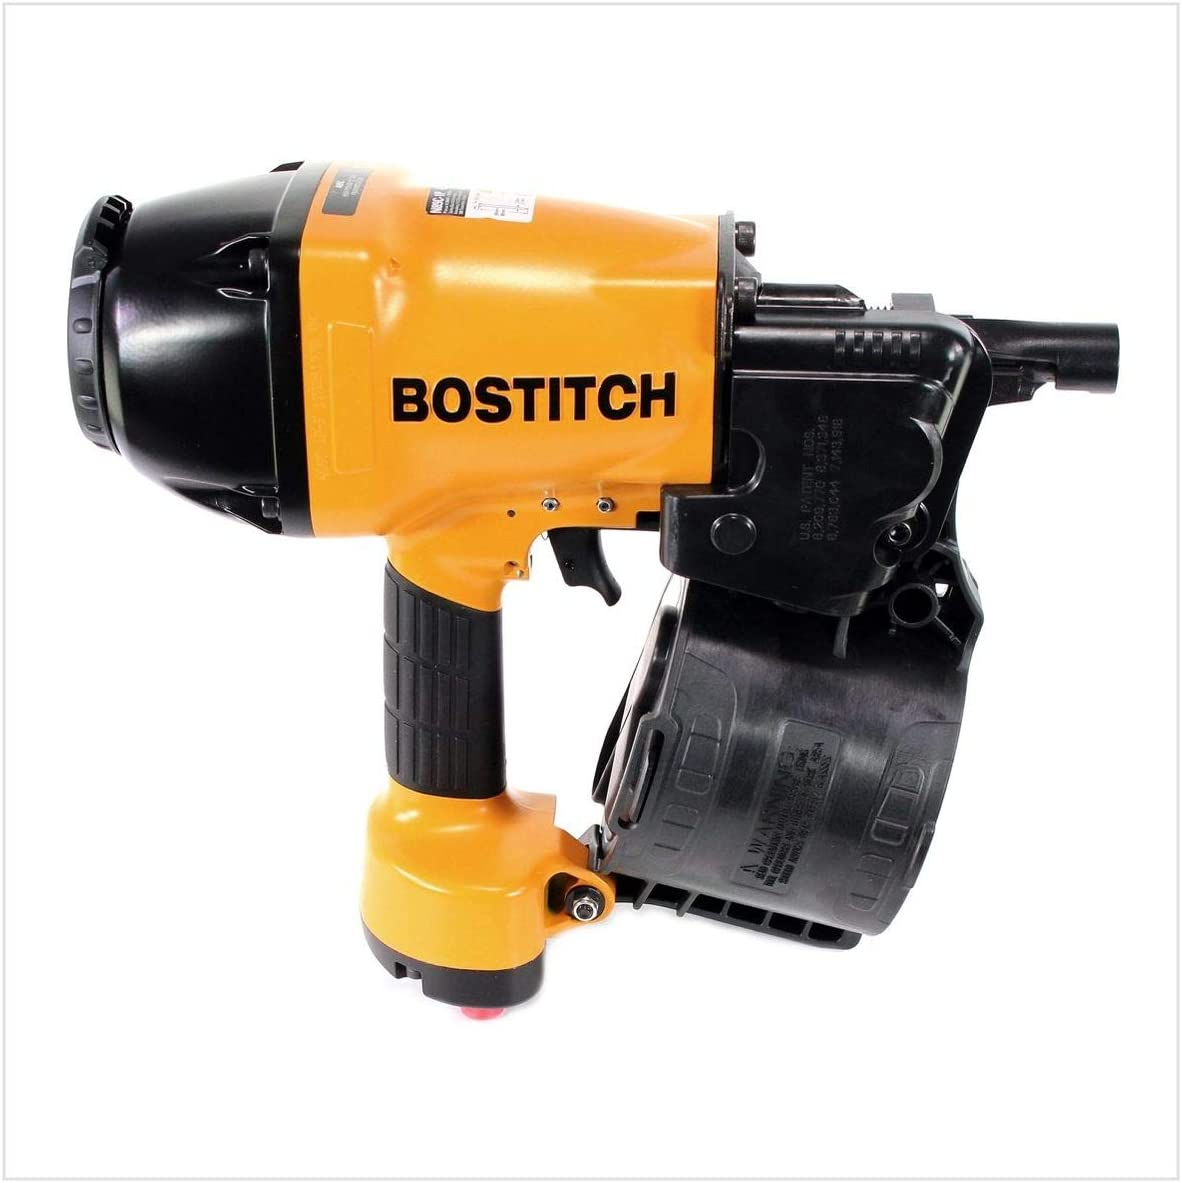 Bostitch N89C-1P-E chiodatrice coil CT 50mm-90mm Max